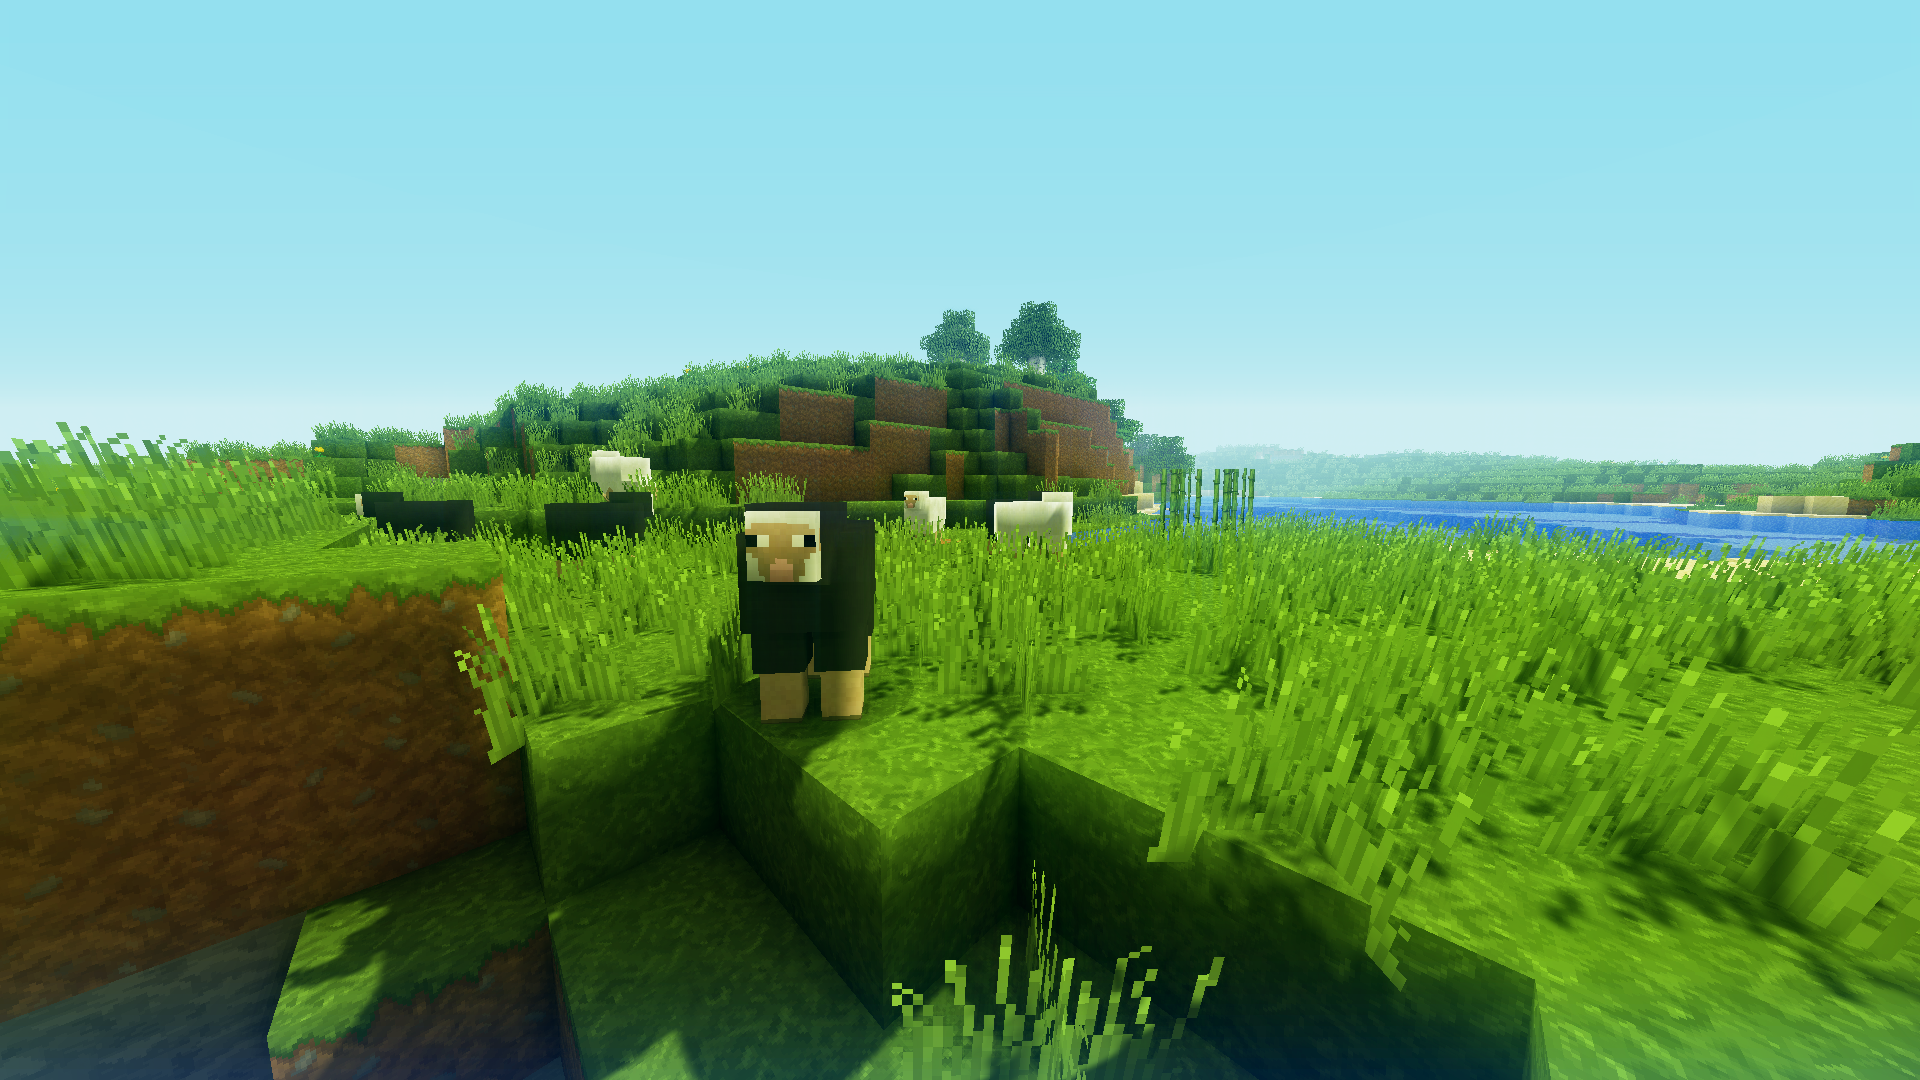 minecraft___shader_mod_iv_by_smokeyoriginalhd-d4n124b